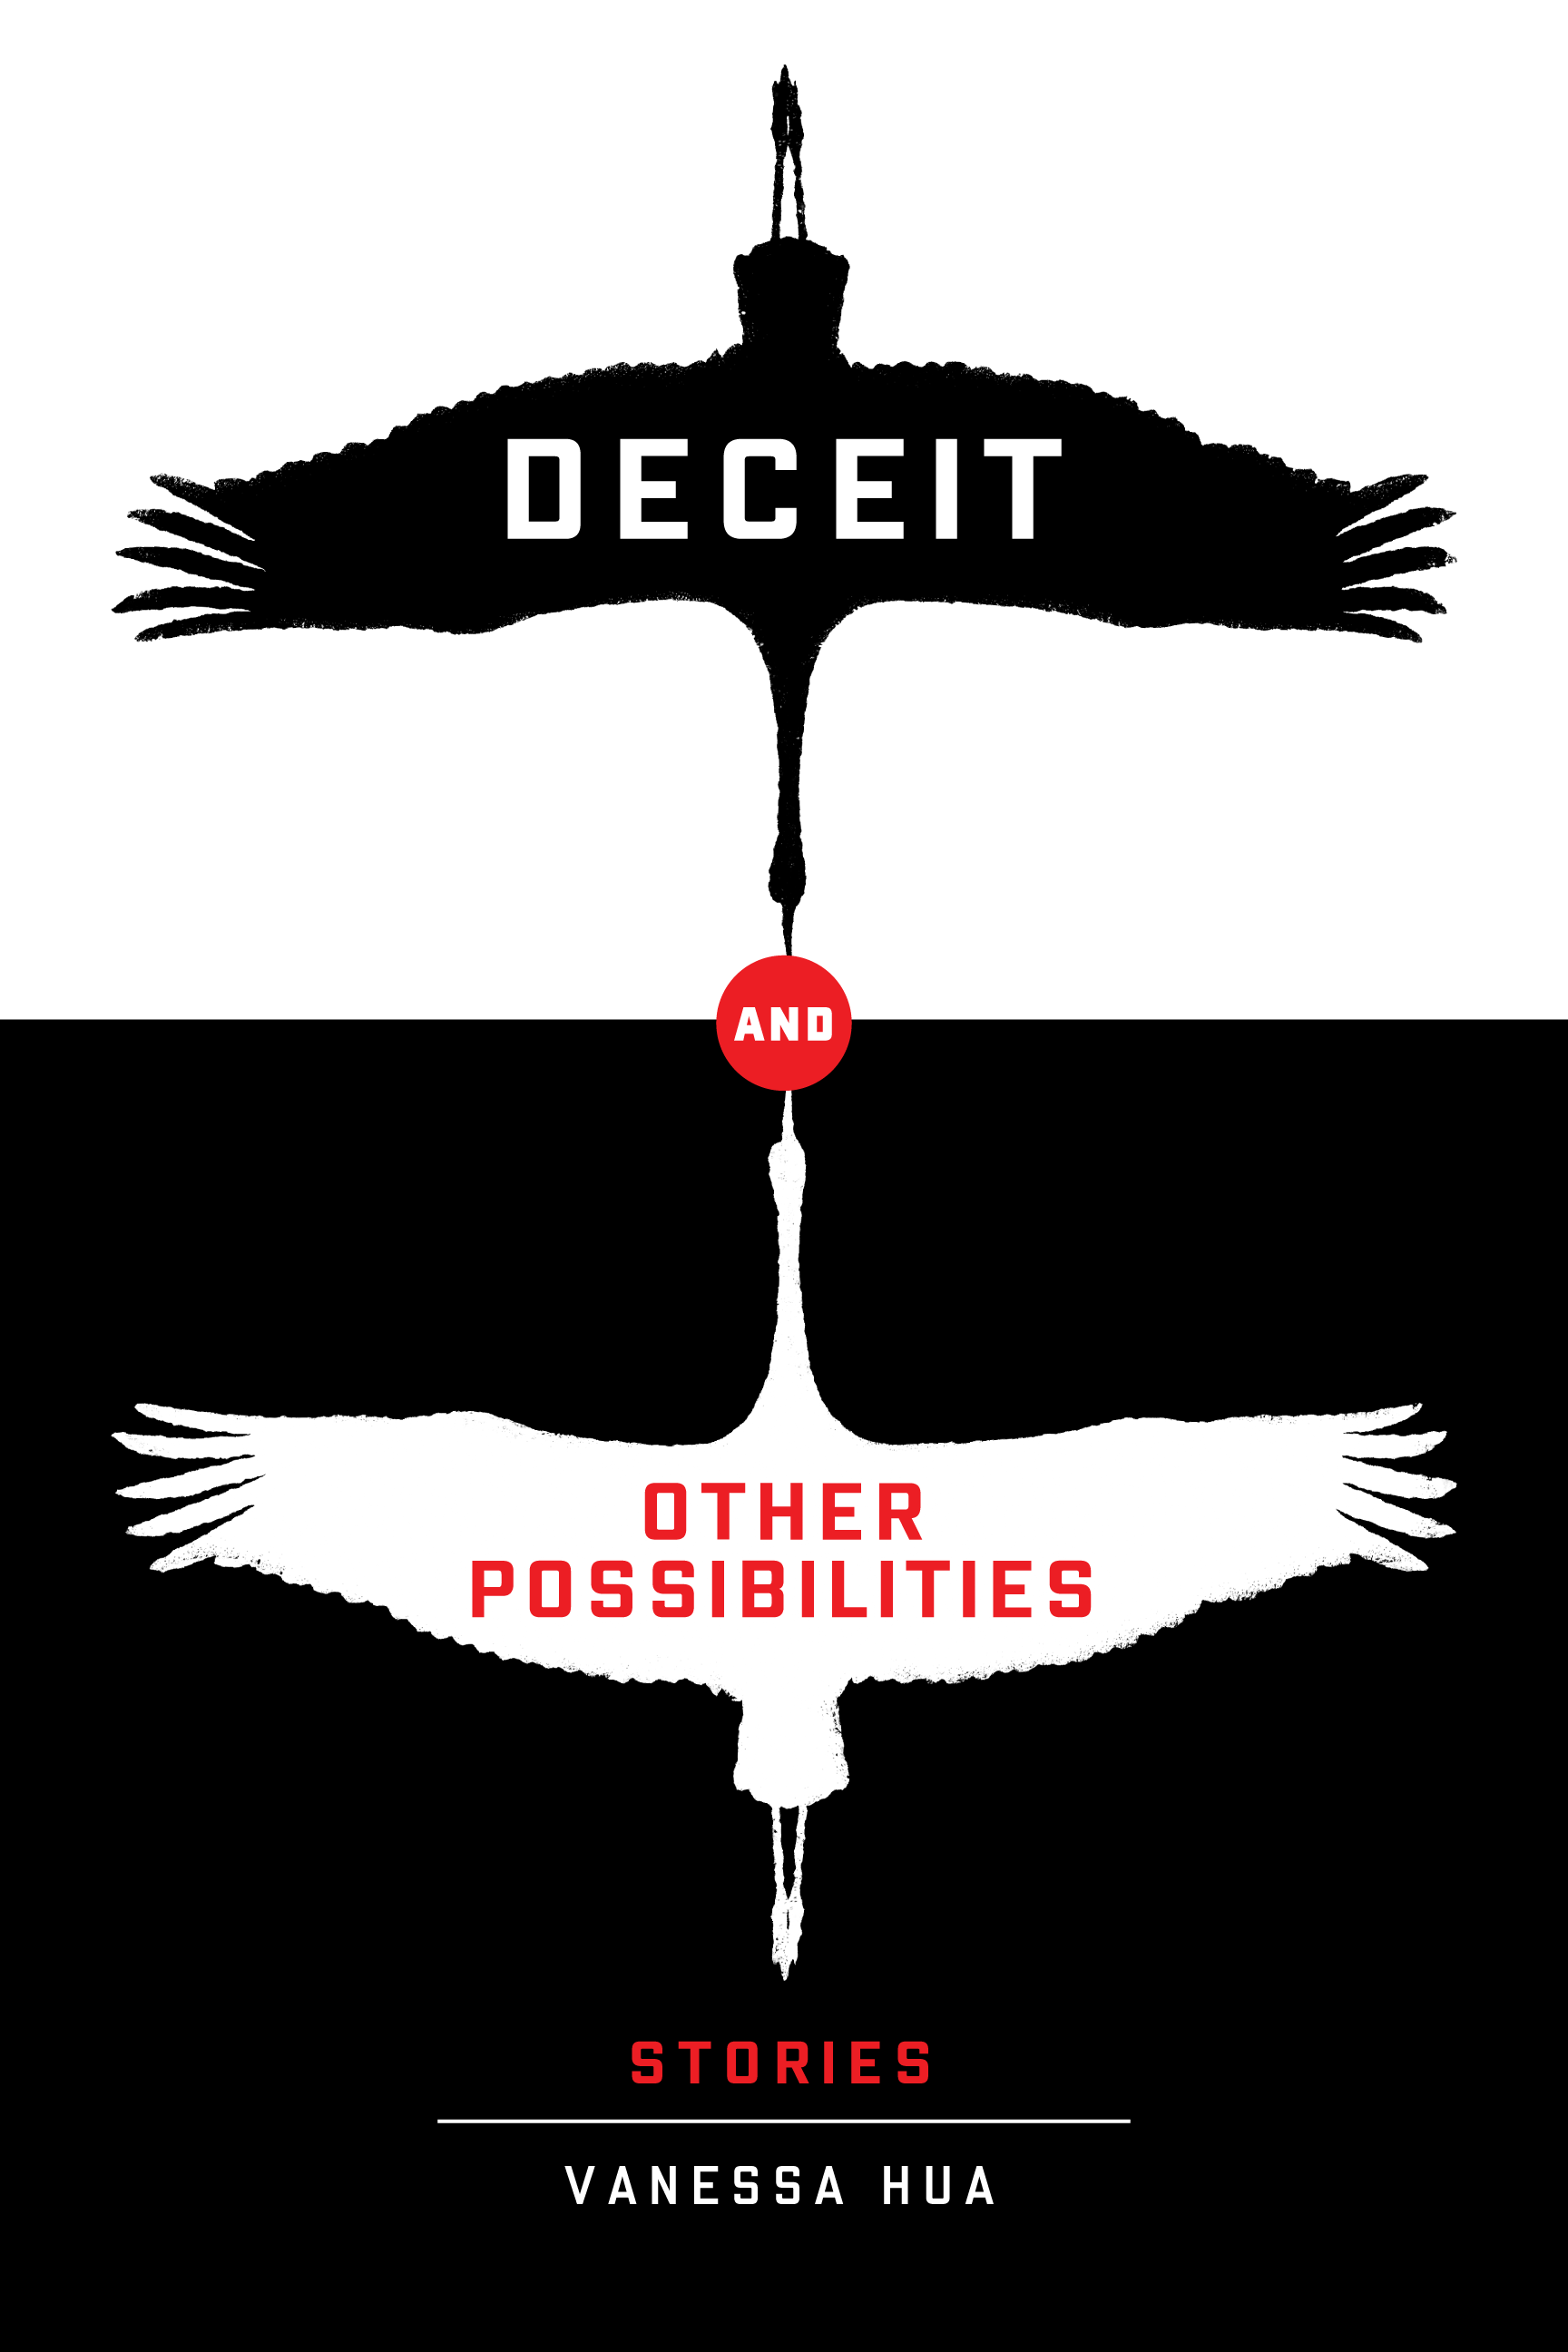 Check out Vanessa's short story collection,   DECEIT AND OTHER POSSIBILITIES